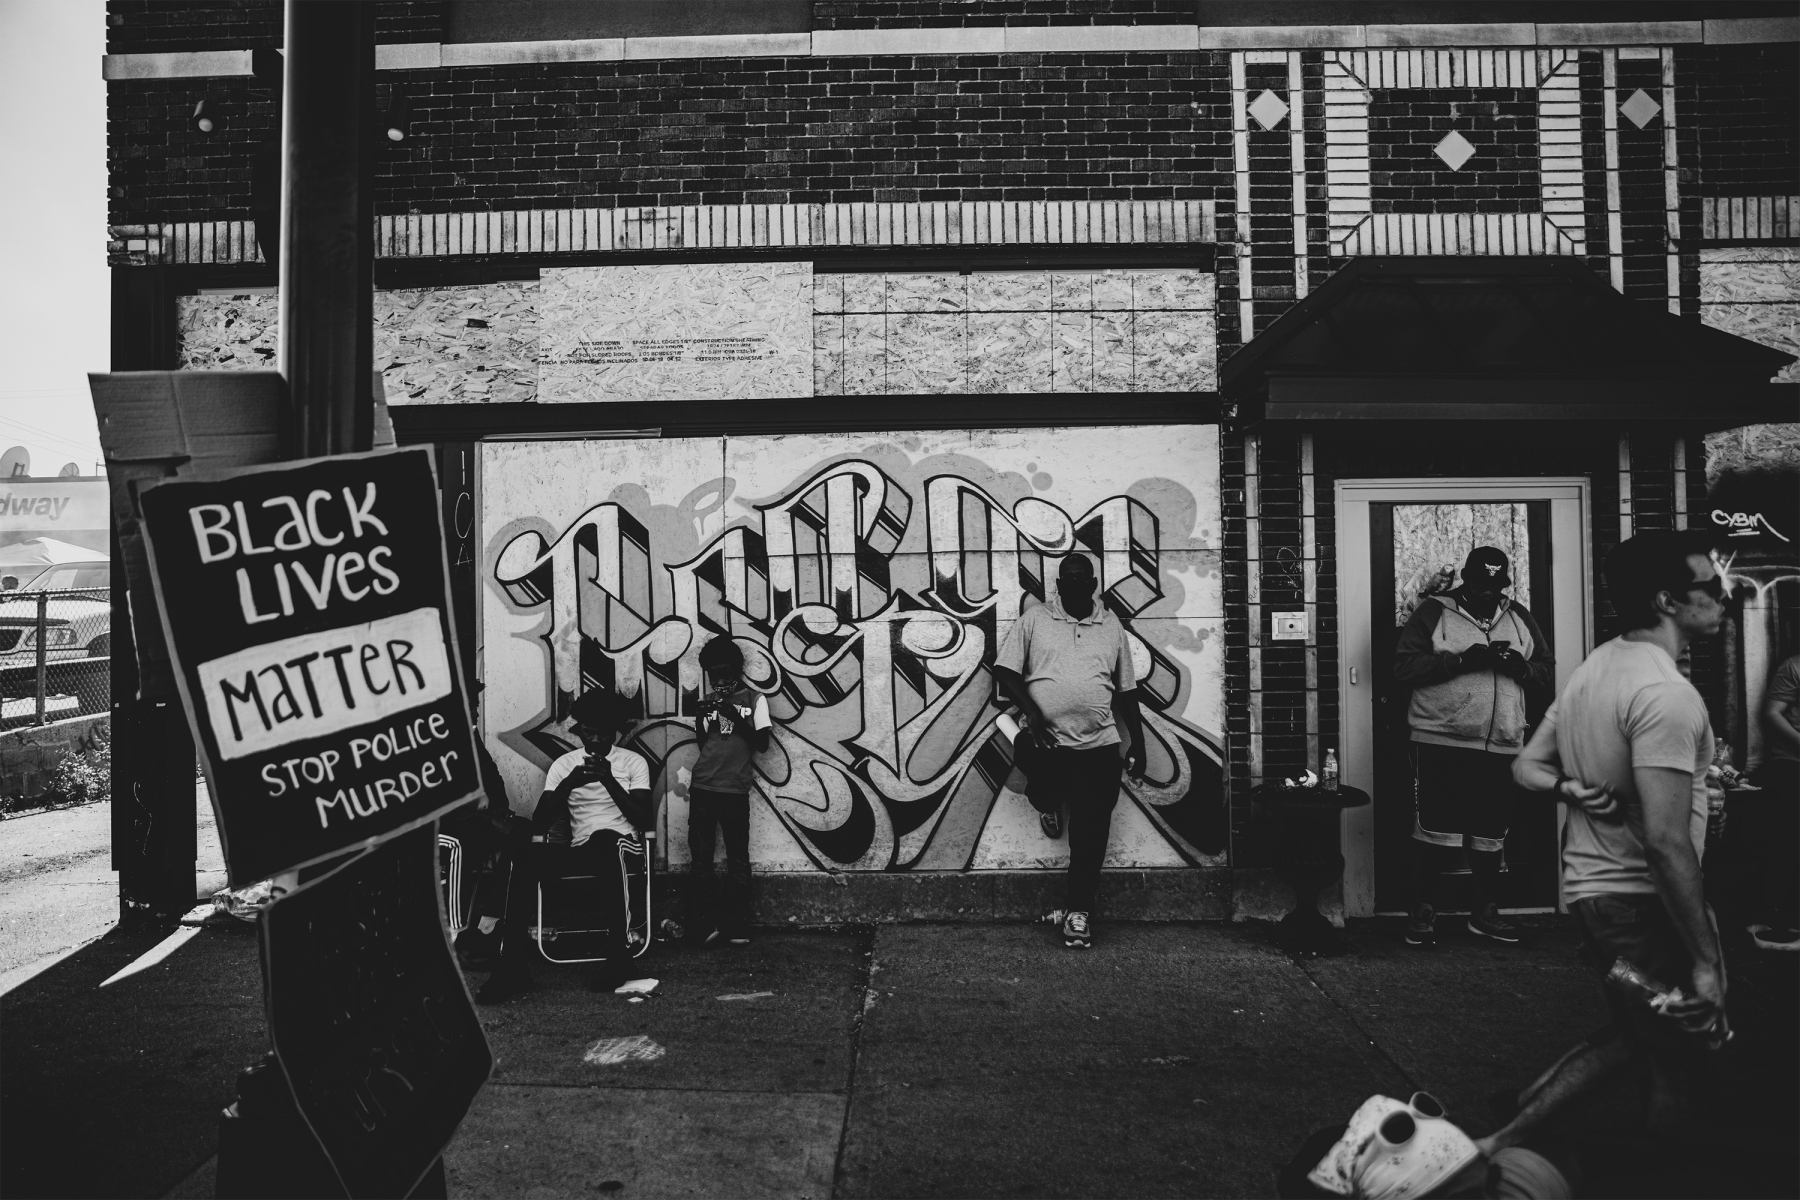 Graffiti and signs for George Floyd and Black Lives Matter